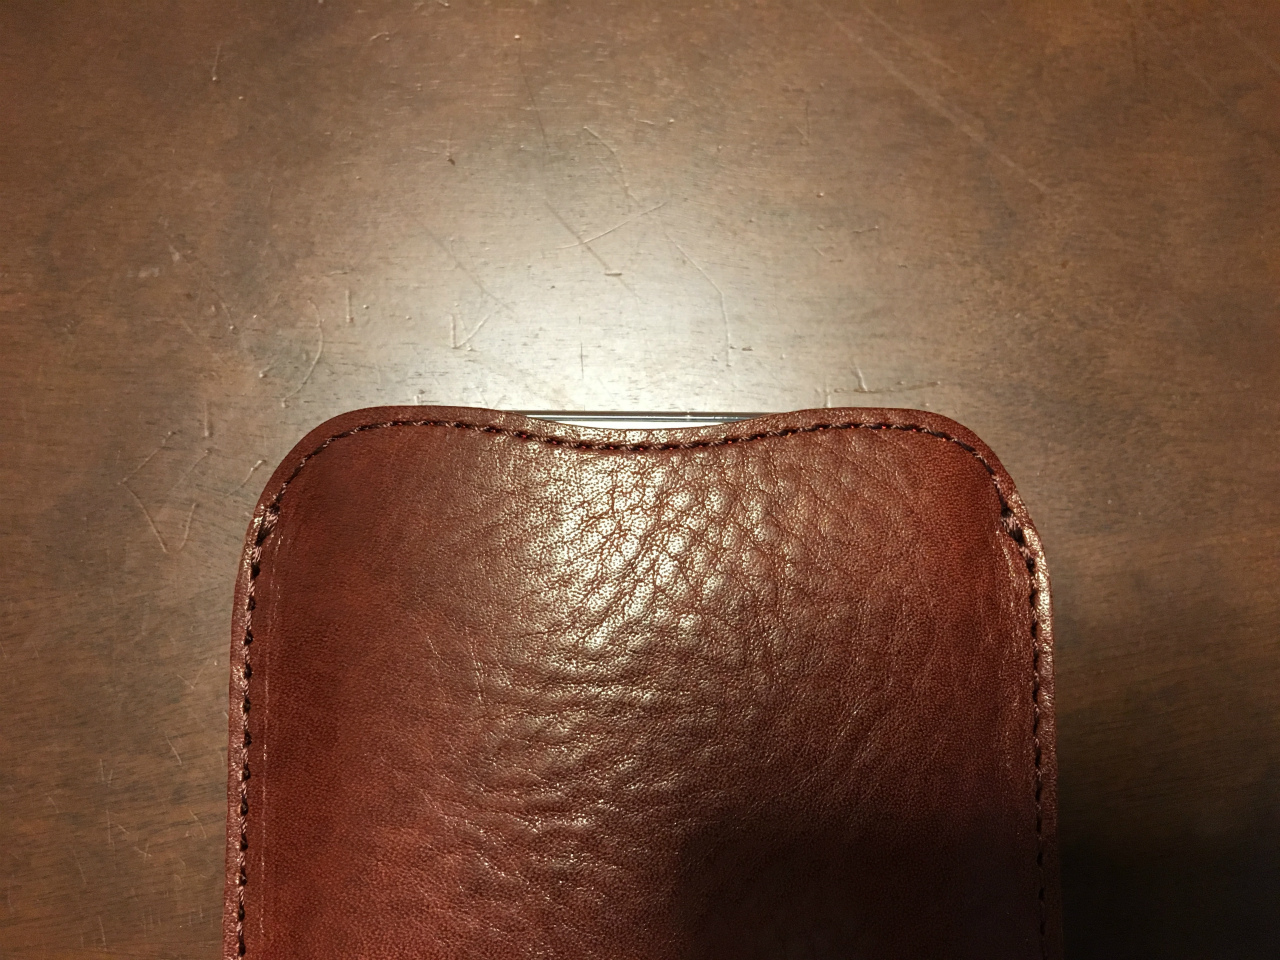 kunitachi-shrink-leather-sleeve-iphone6splus-08